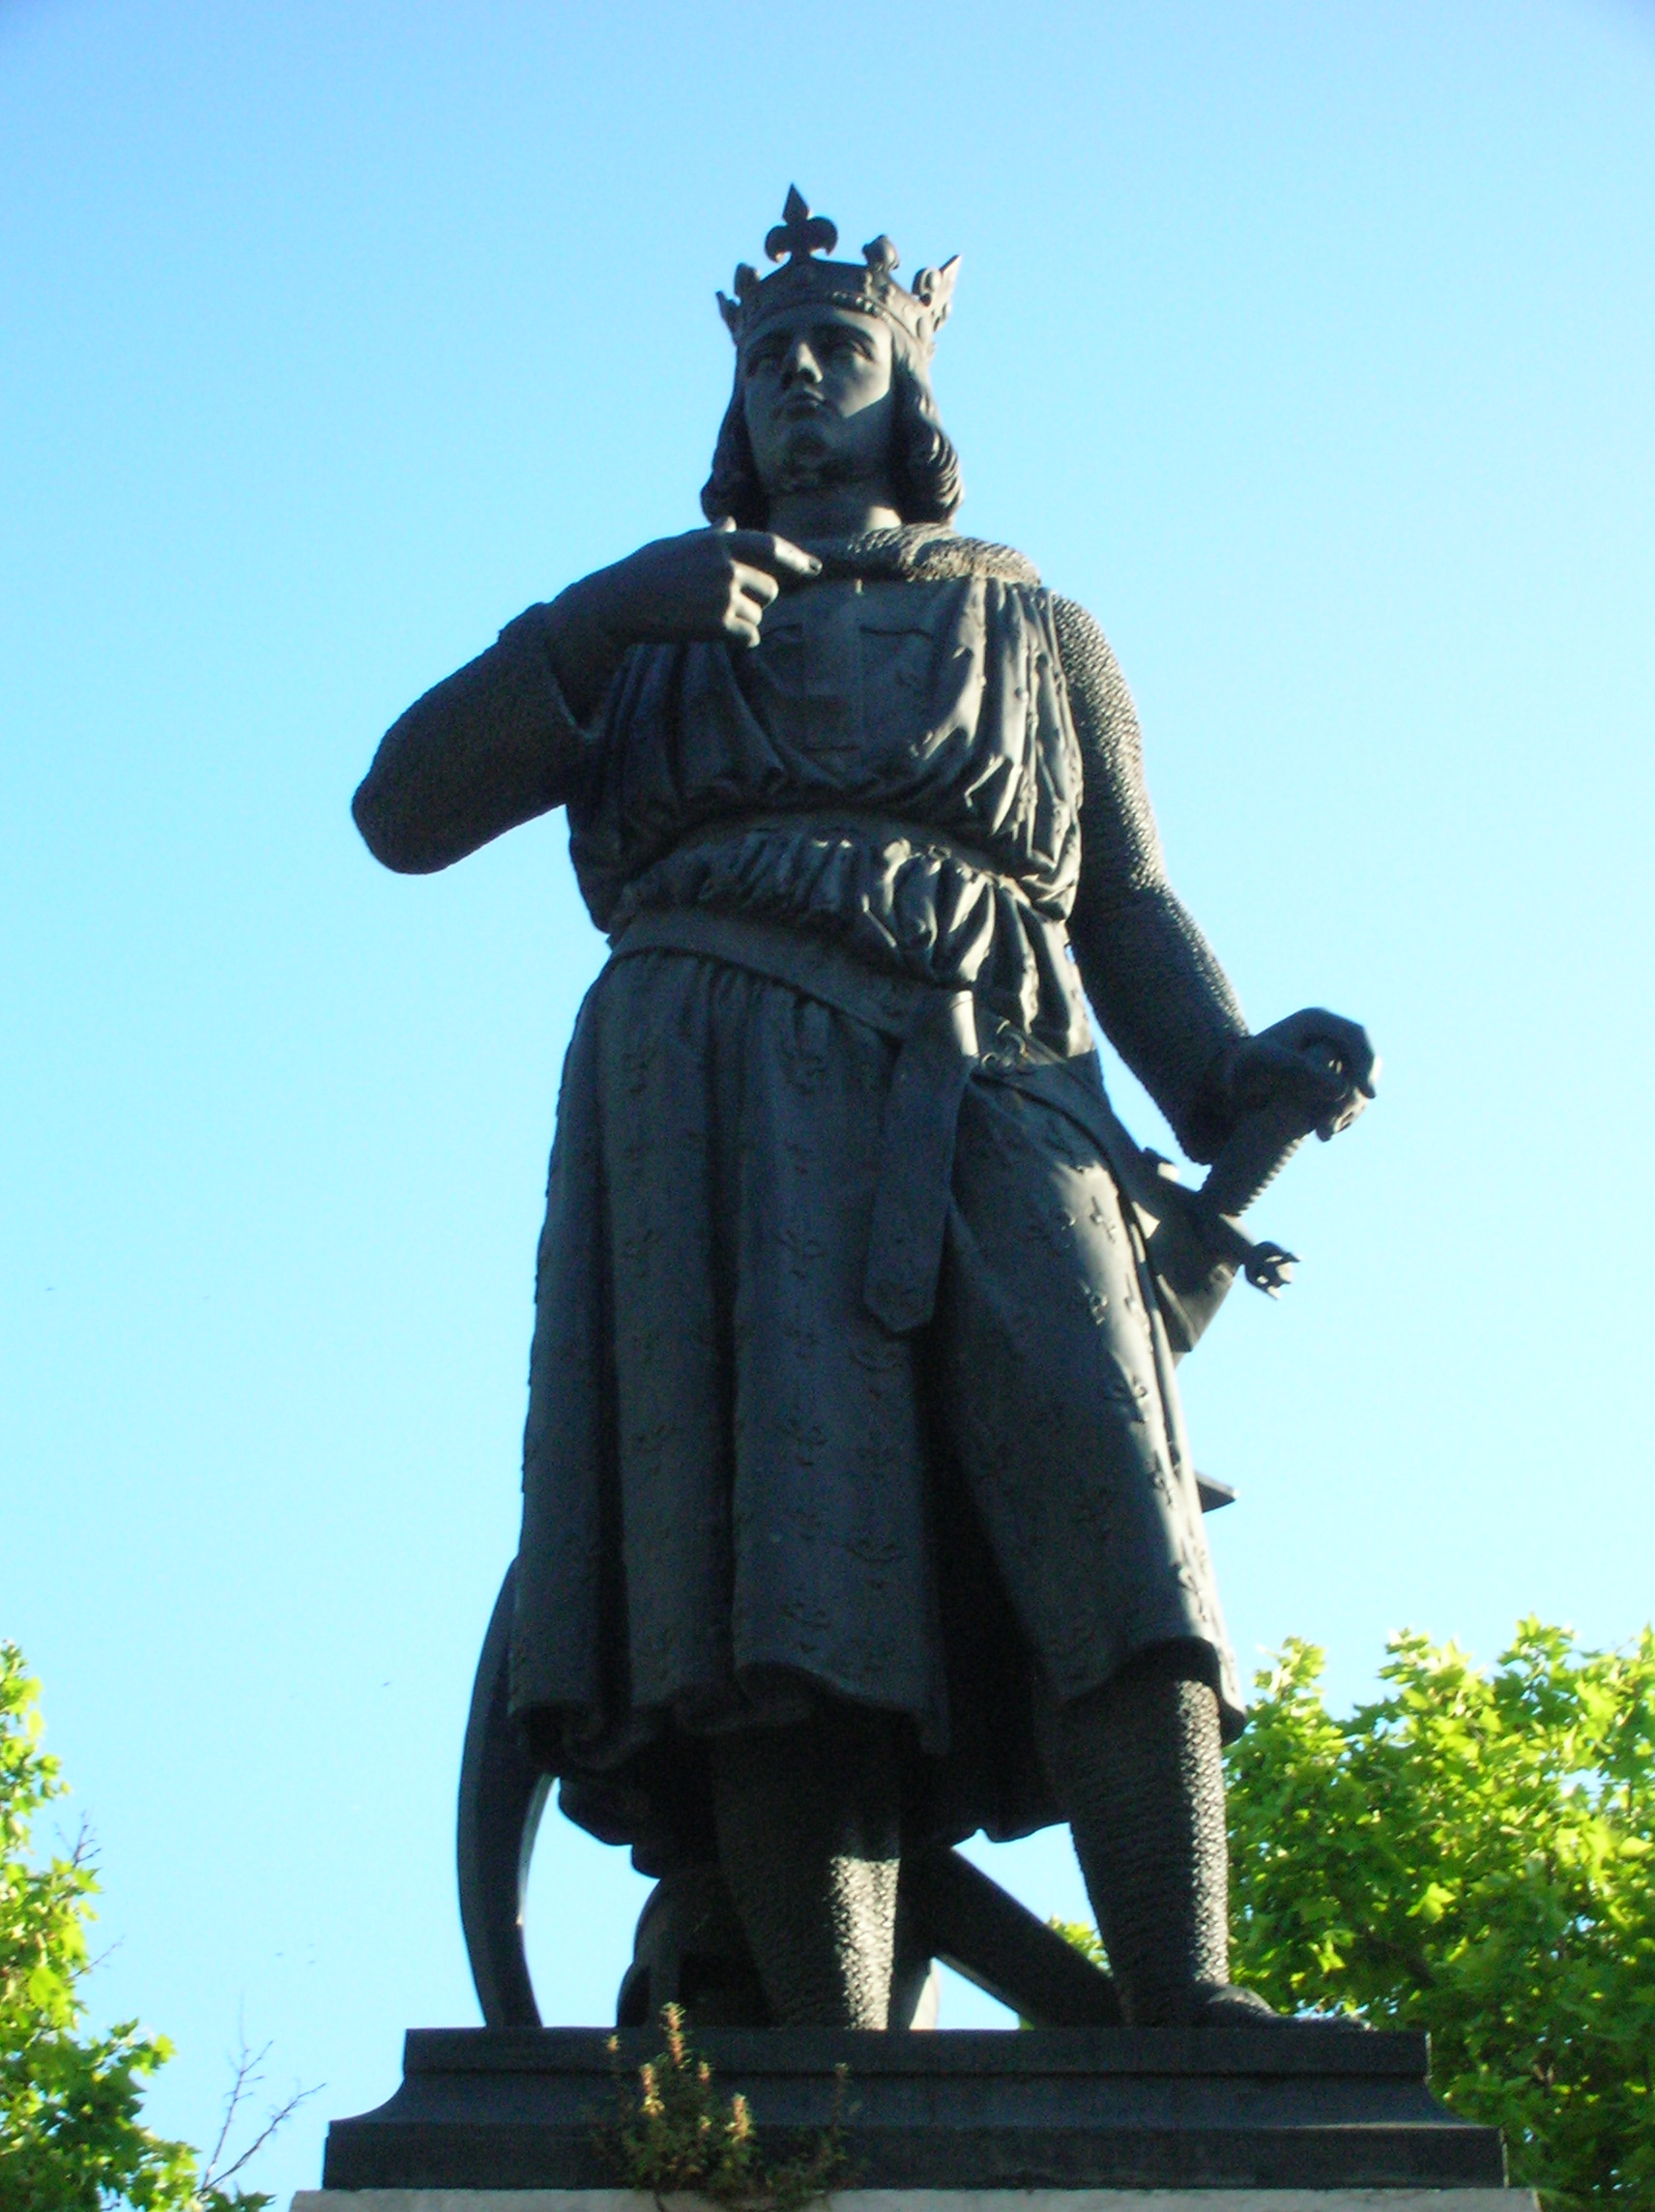 Statue of Louis IX de France (Saint Louis), scultped by James Pradier, in Aigues-Mortes